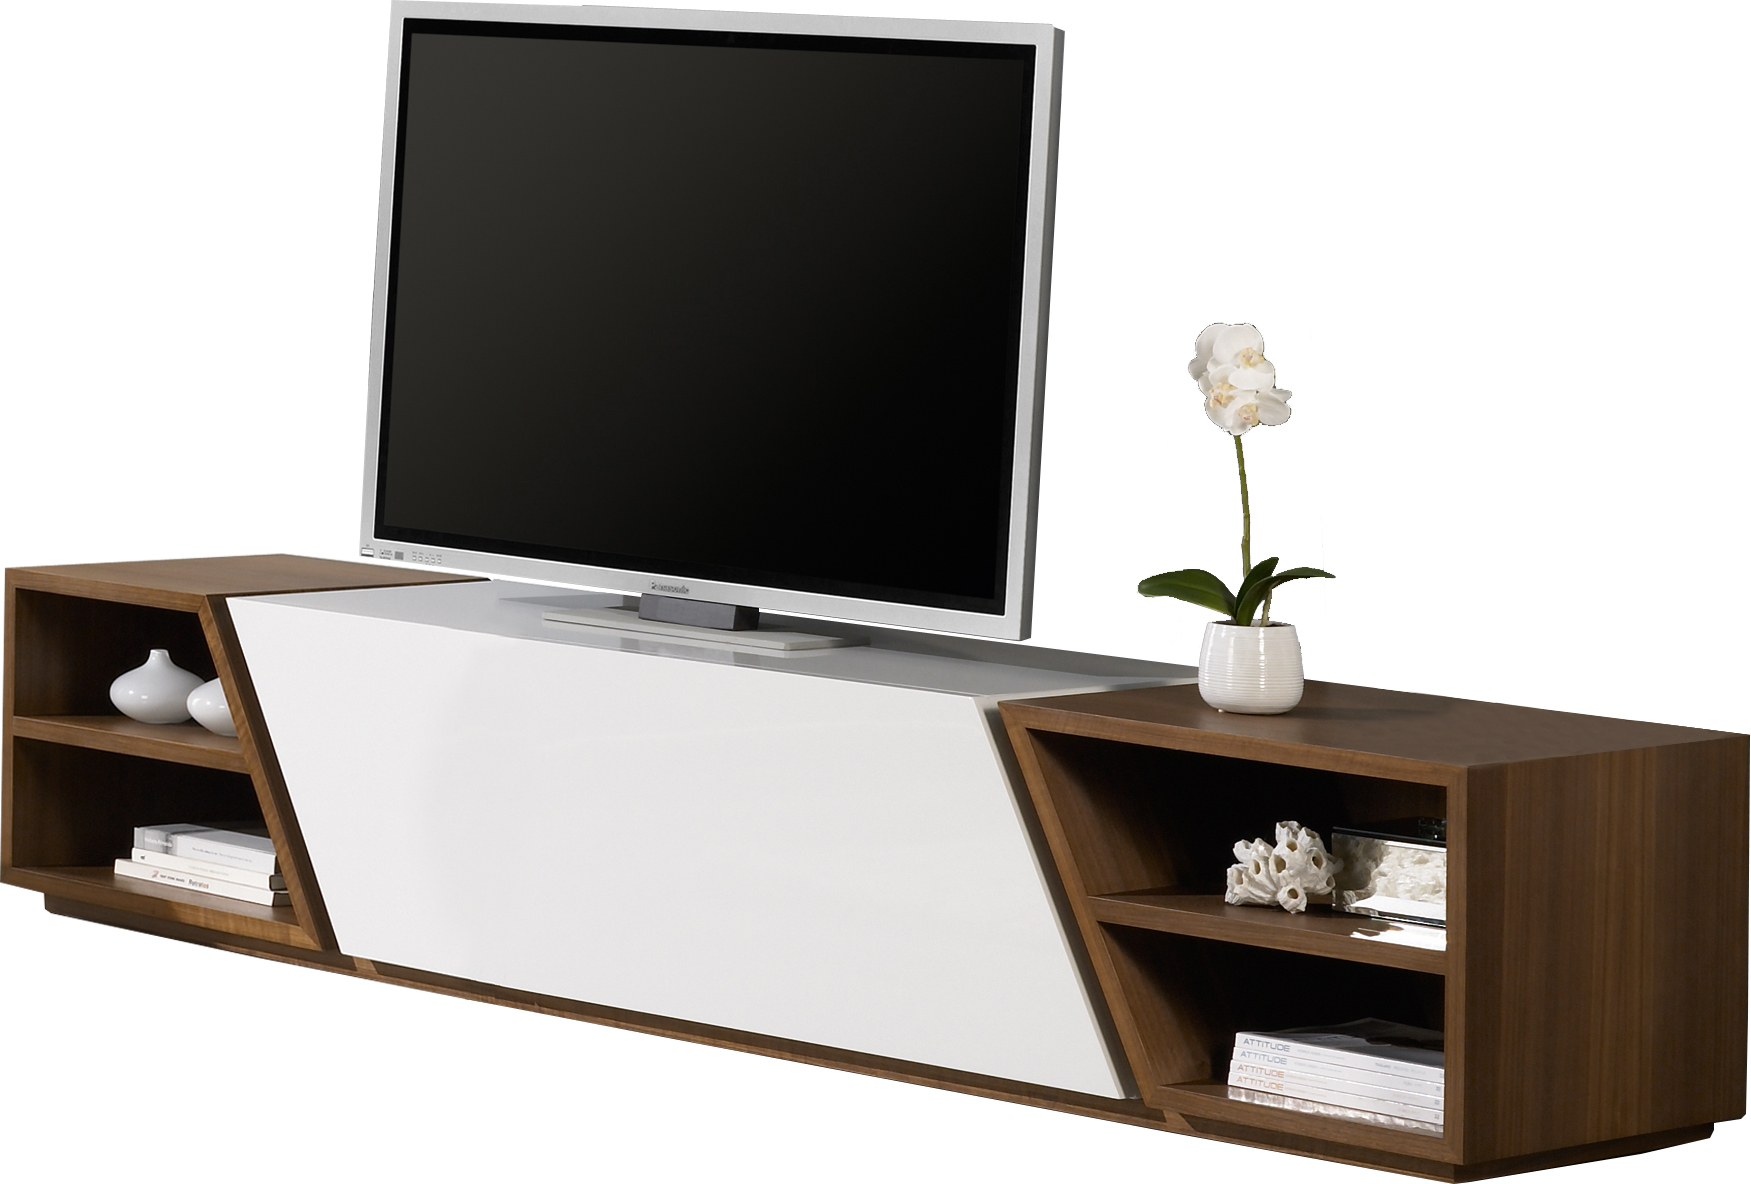 Banc Tv Laqu Blanc Object Moved Banc Tv Blanc Laque Id Es De D  # Meuble Tv Amera Blanc Laque